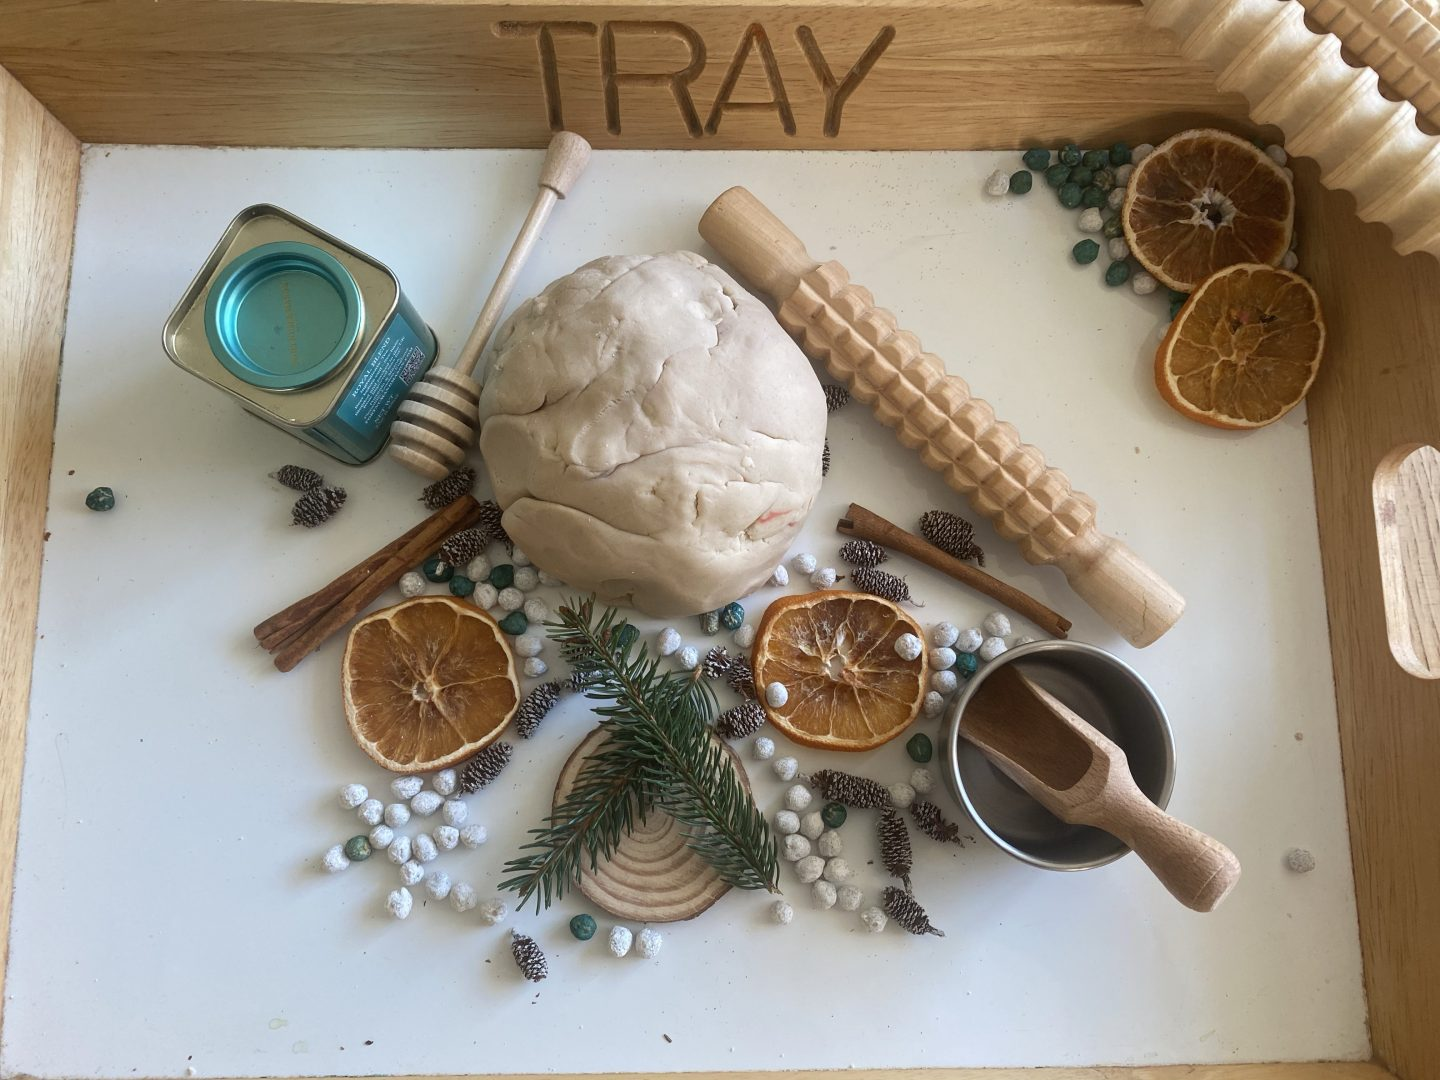 natural play dough with foliage and wooden tools